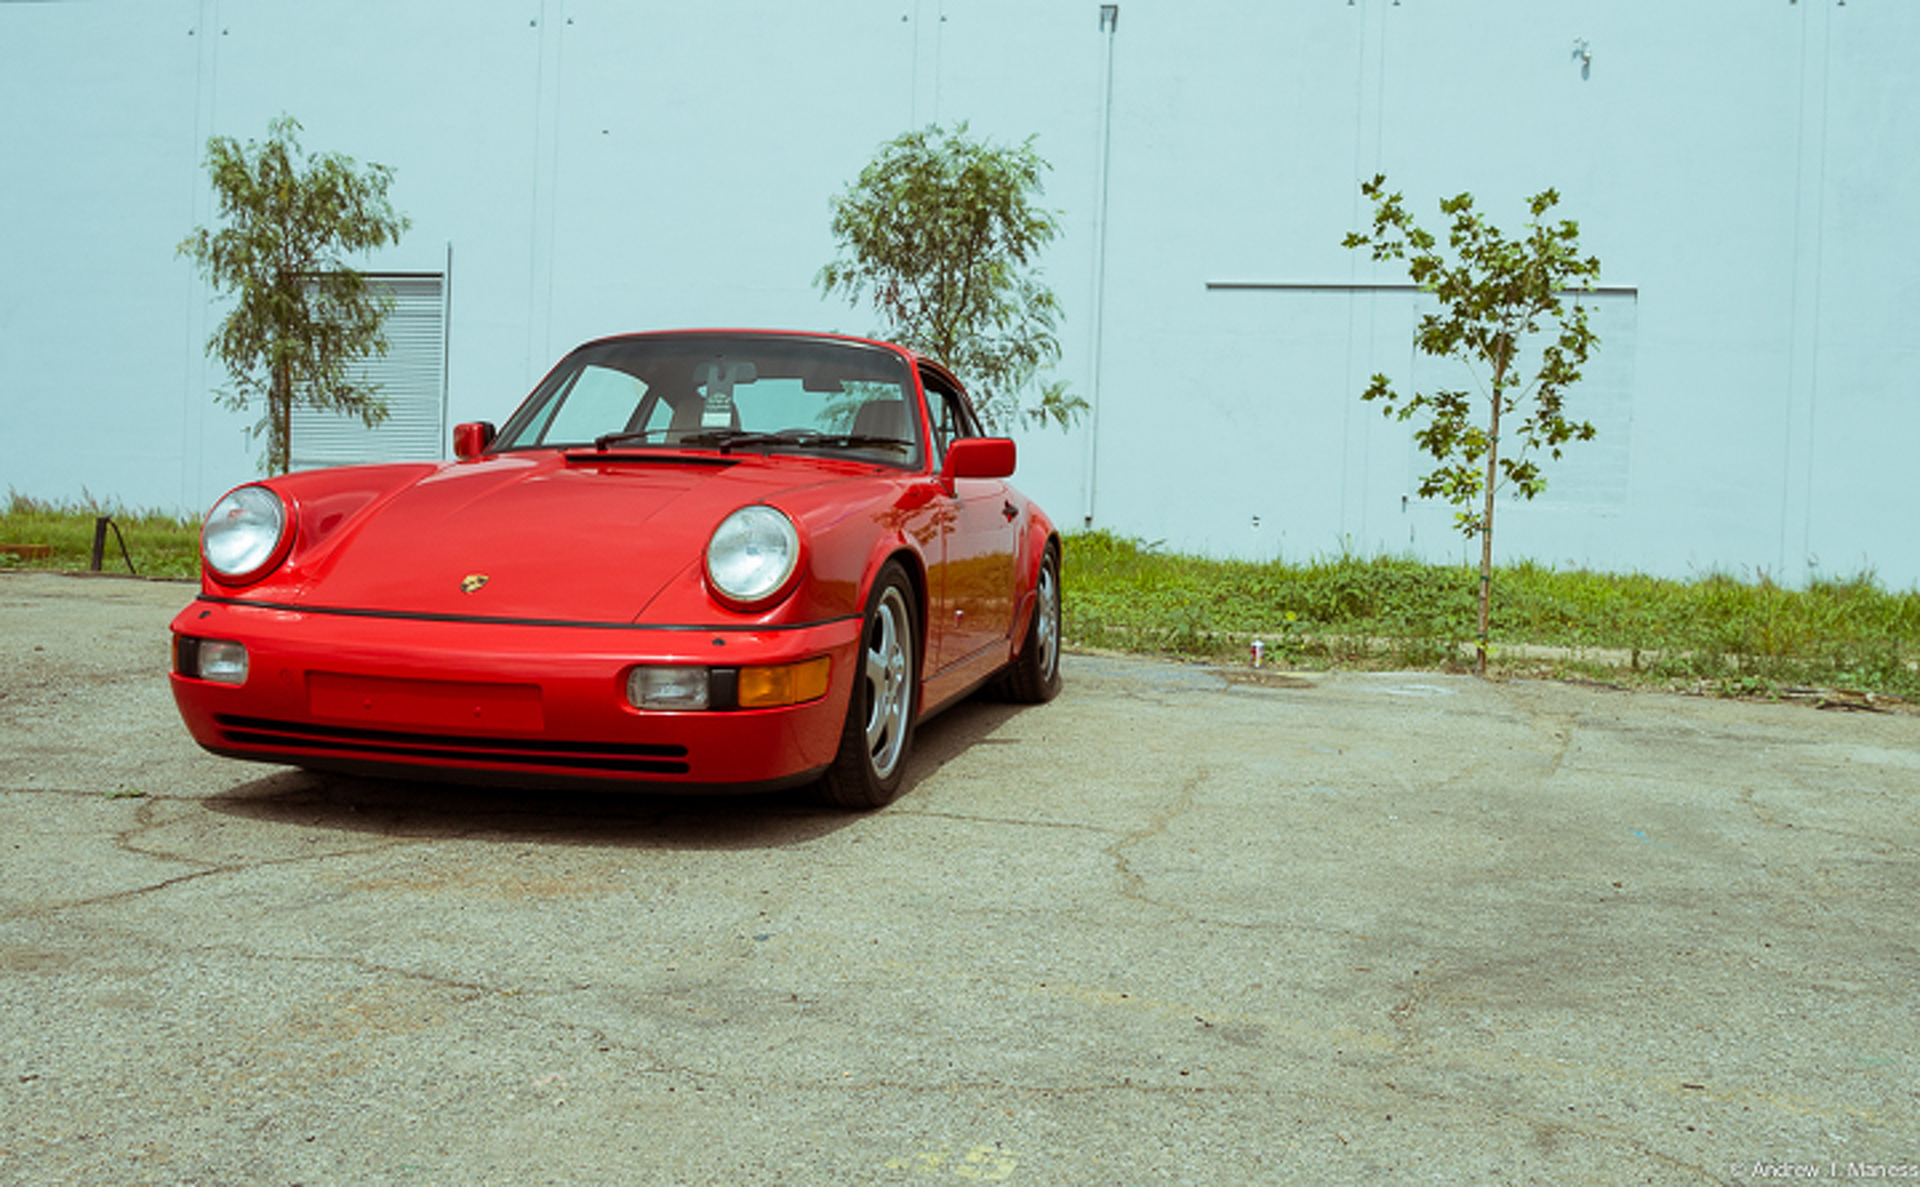 Enjoy The Overwhelming Beauty Of Luftgekühlt 3 and Its Many Porsches